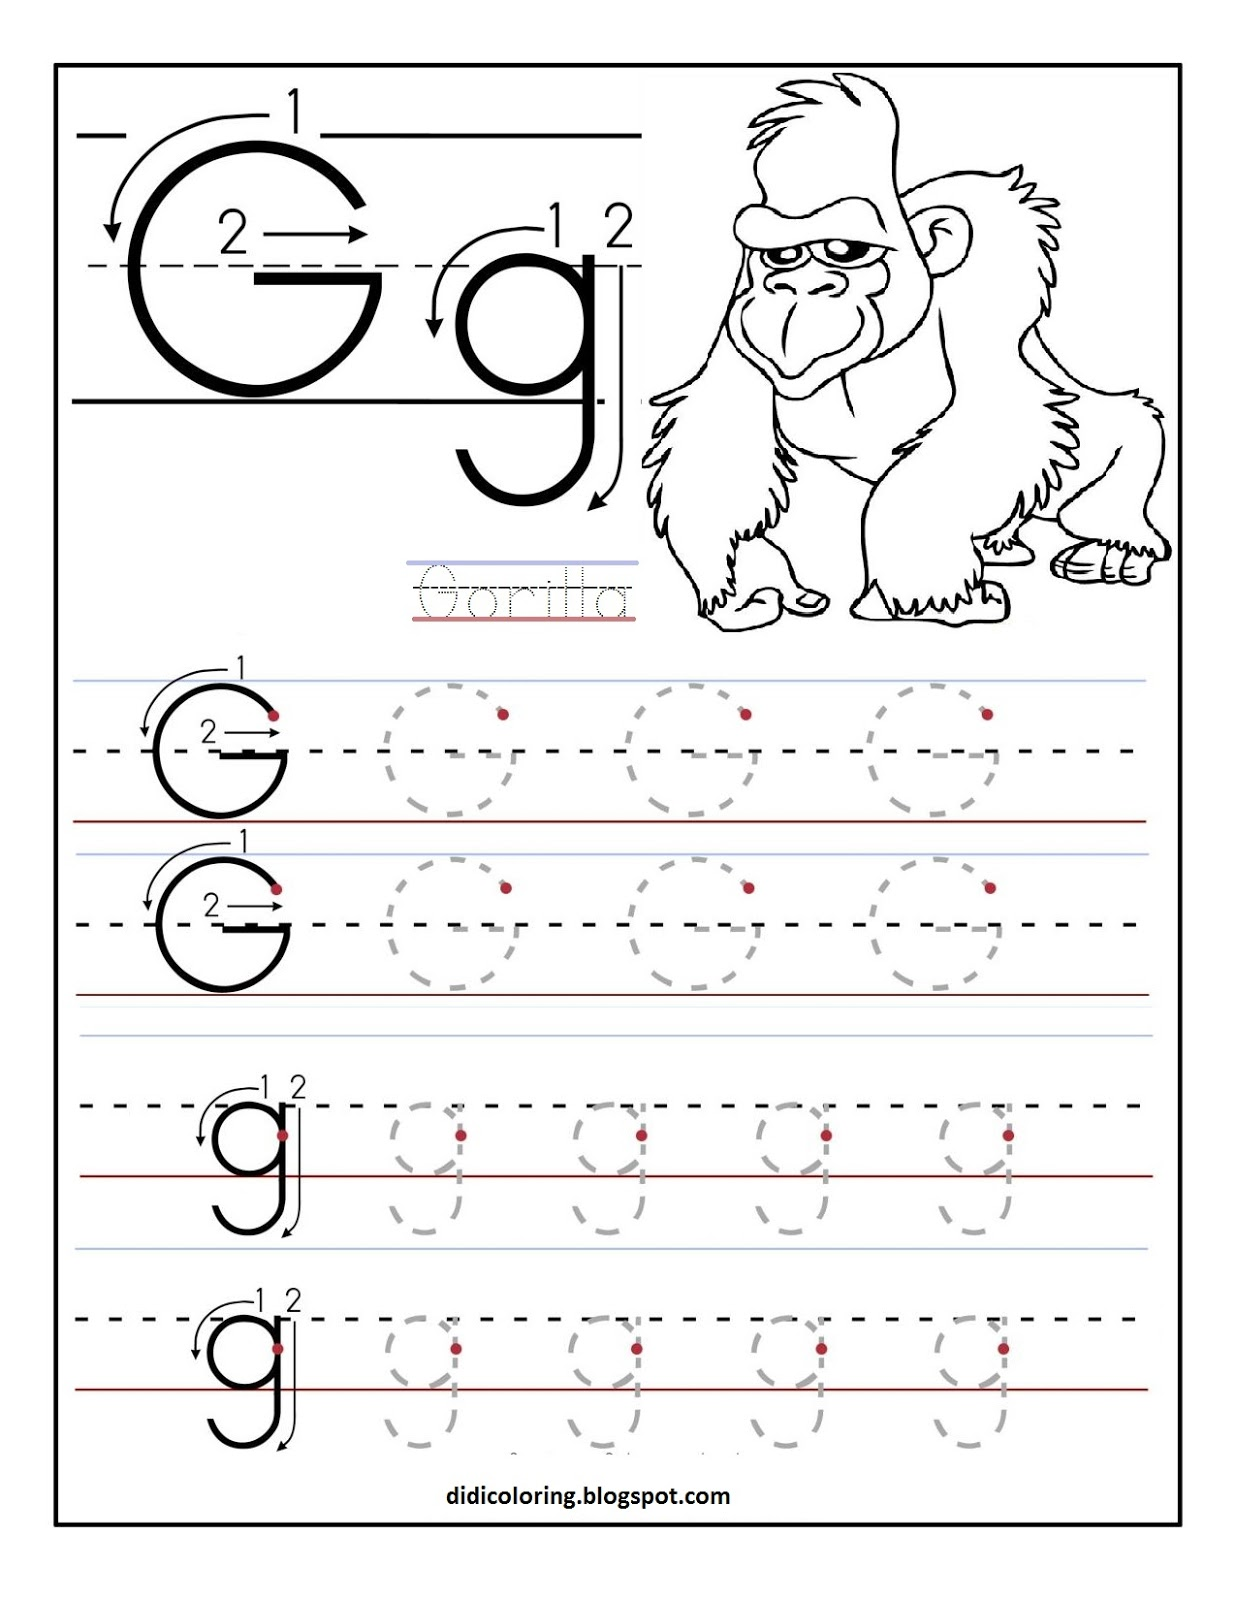 Free Printable Worksheet Letter G For Your Child To Learn